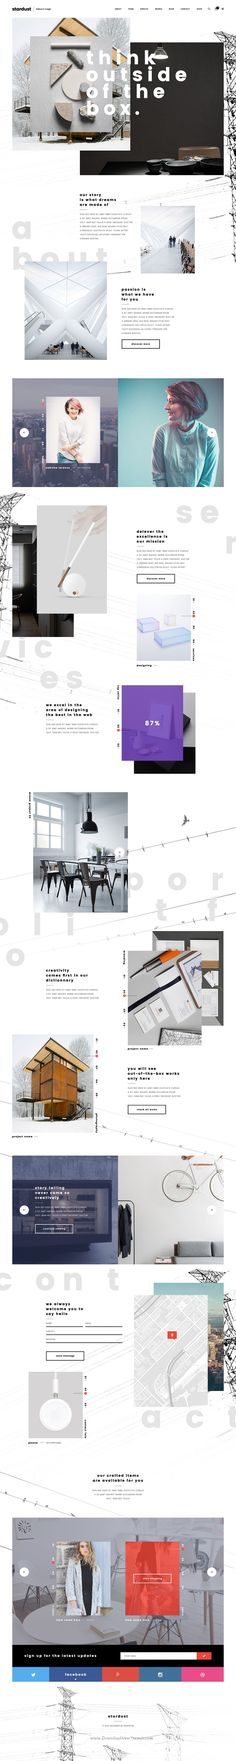 stardust is a Professionally designed Out-of-the-Box Creative PSD #Template for…